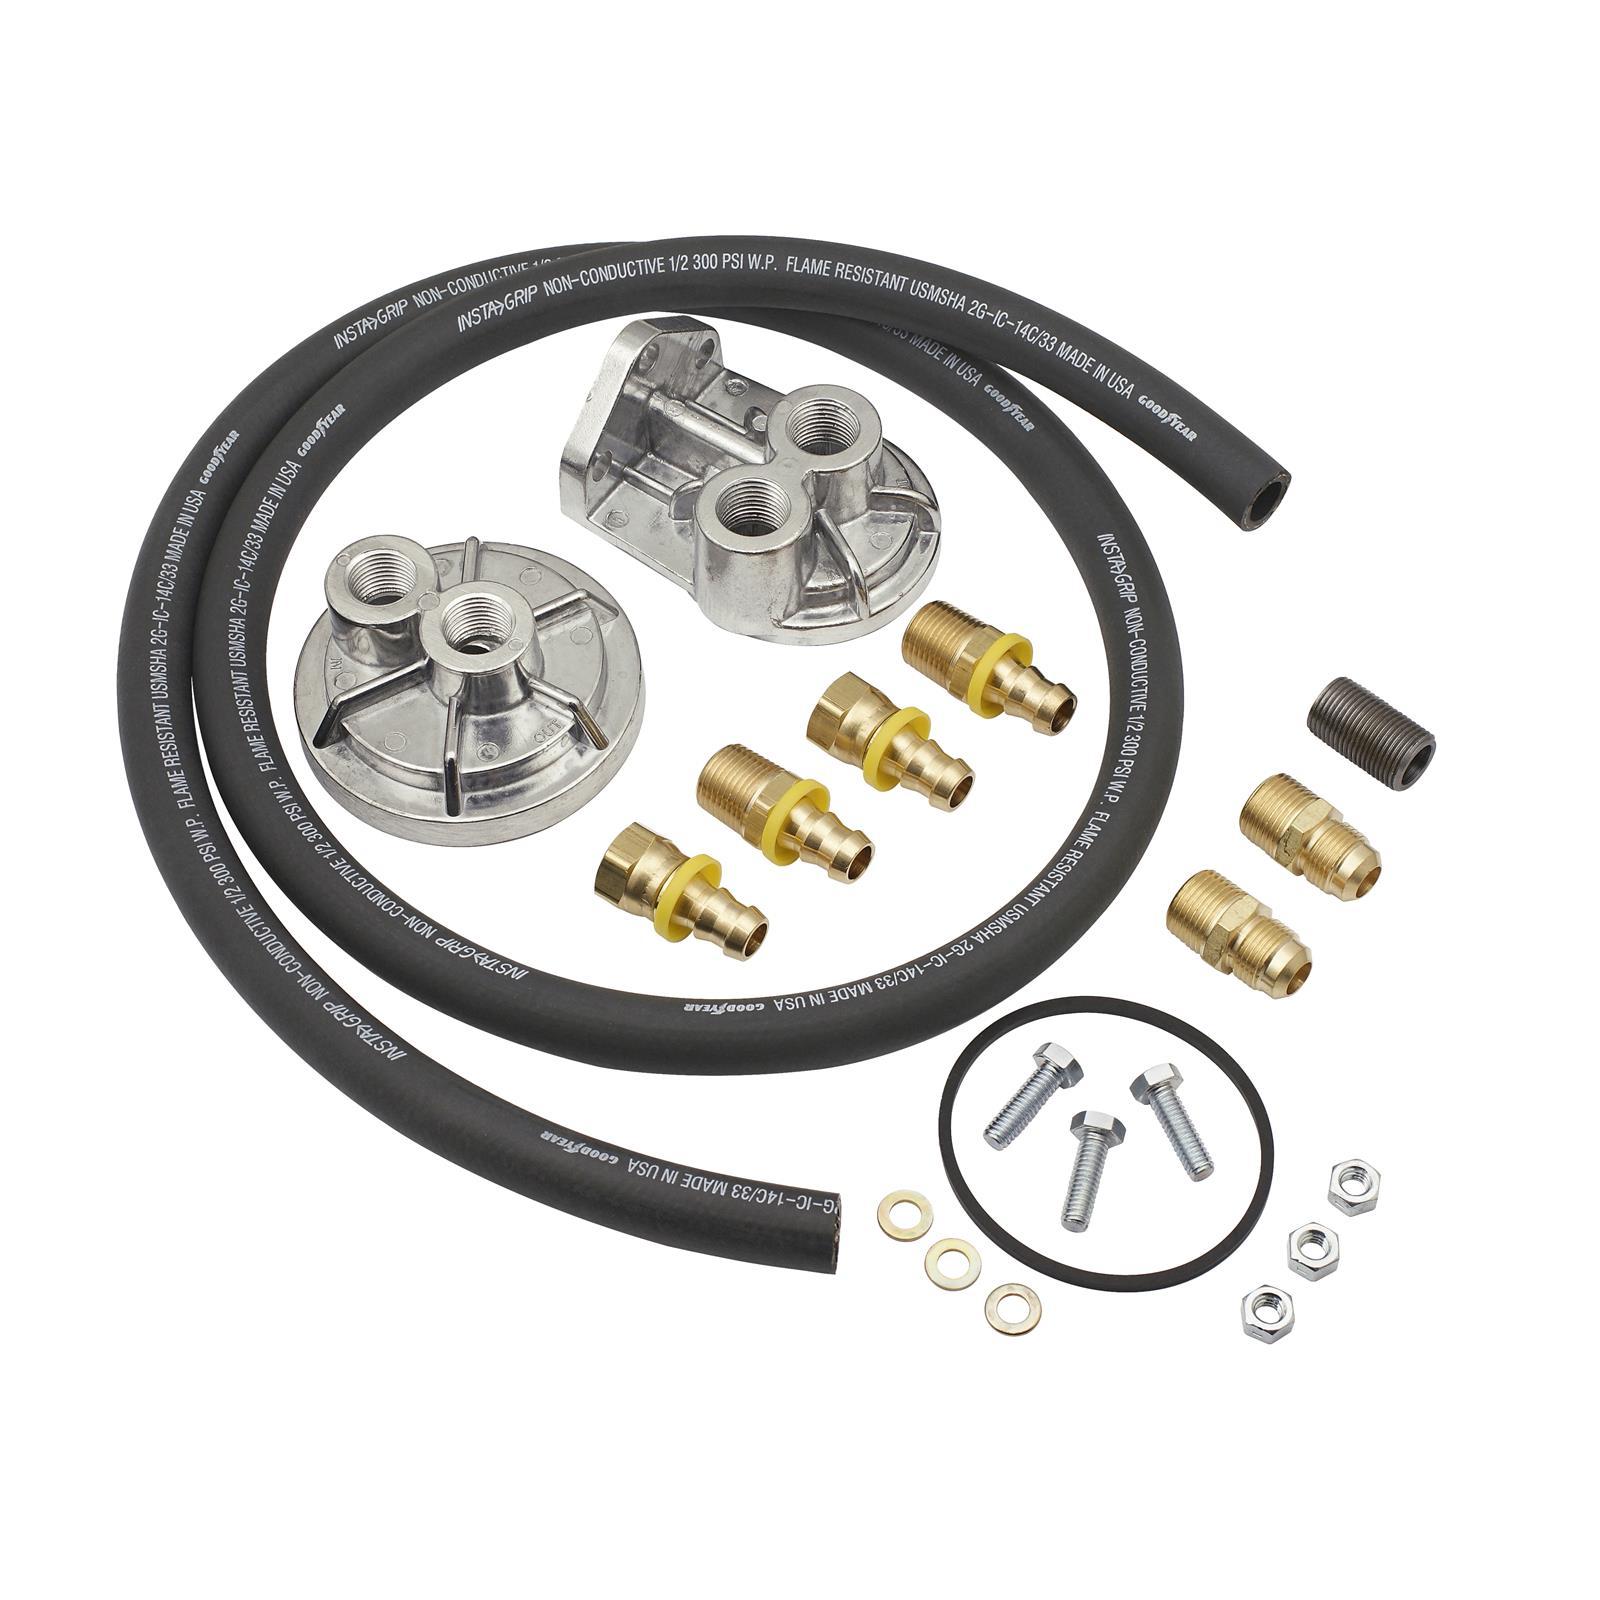 Mr Gasket Remote Oil Filter Relocation Kits 7680 Free Shipping On Fuel Orders Over 49 At Summit Racing